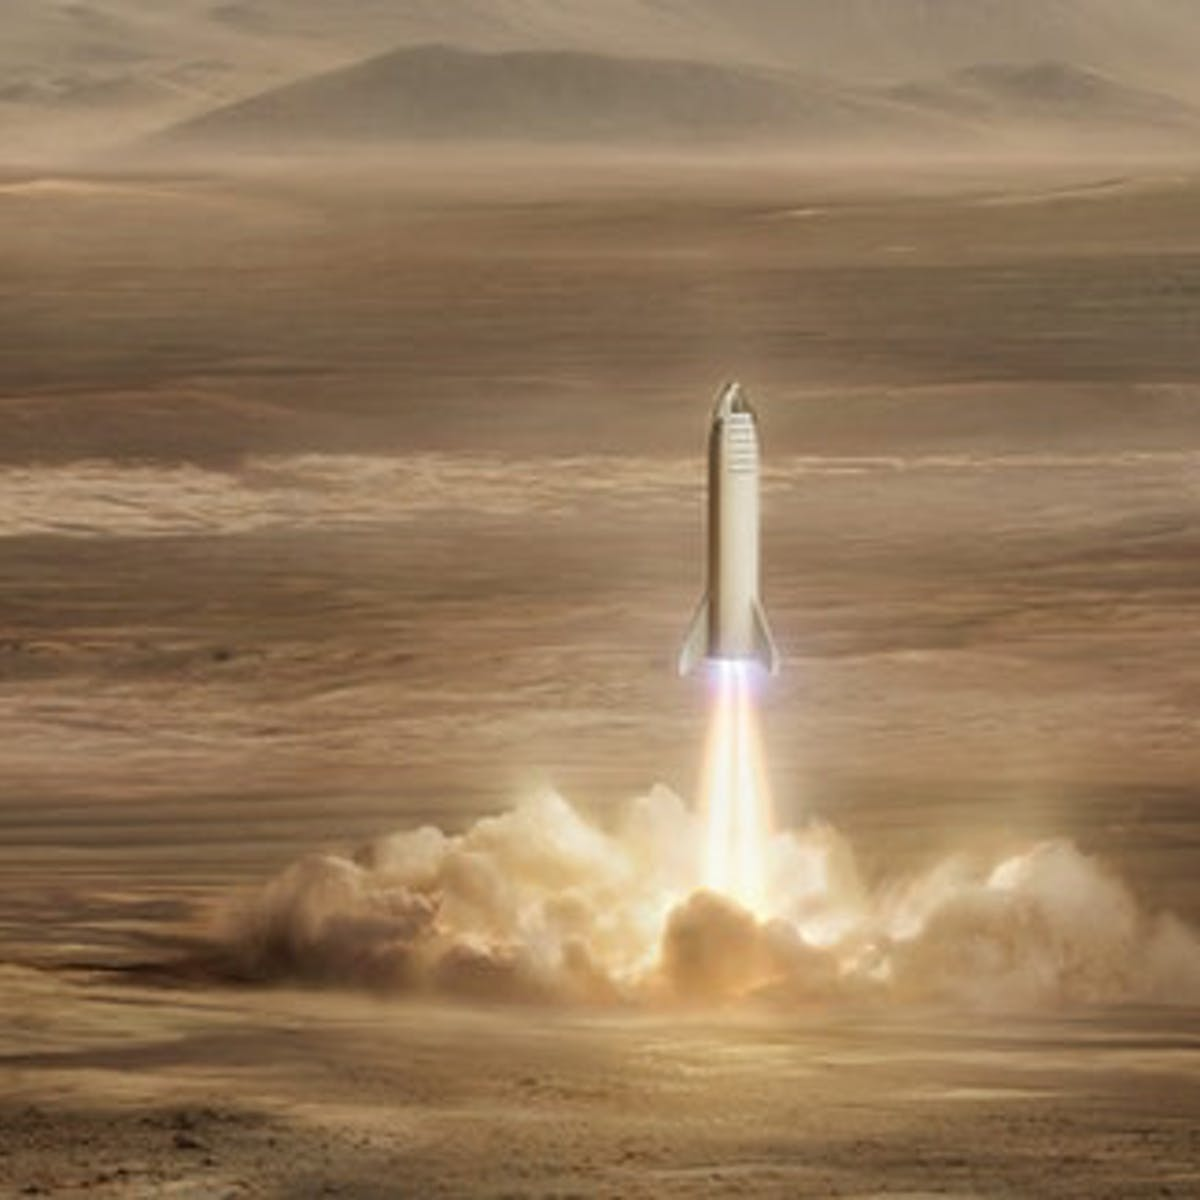 Inverse Daily: The True Cost of Building a City on Mars